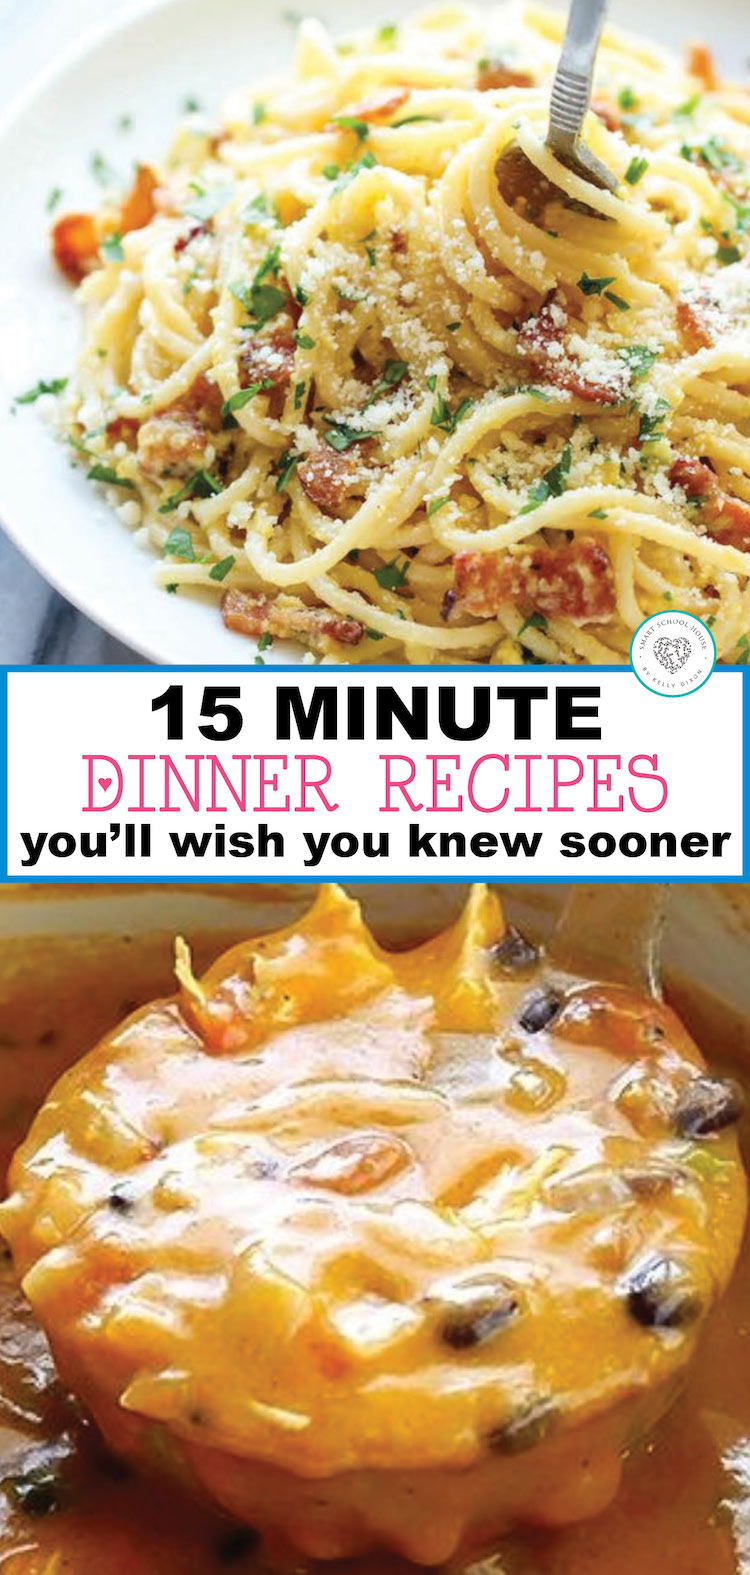 15 Minute Dinner Recipes You'll Wish You Knew Sooner